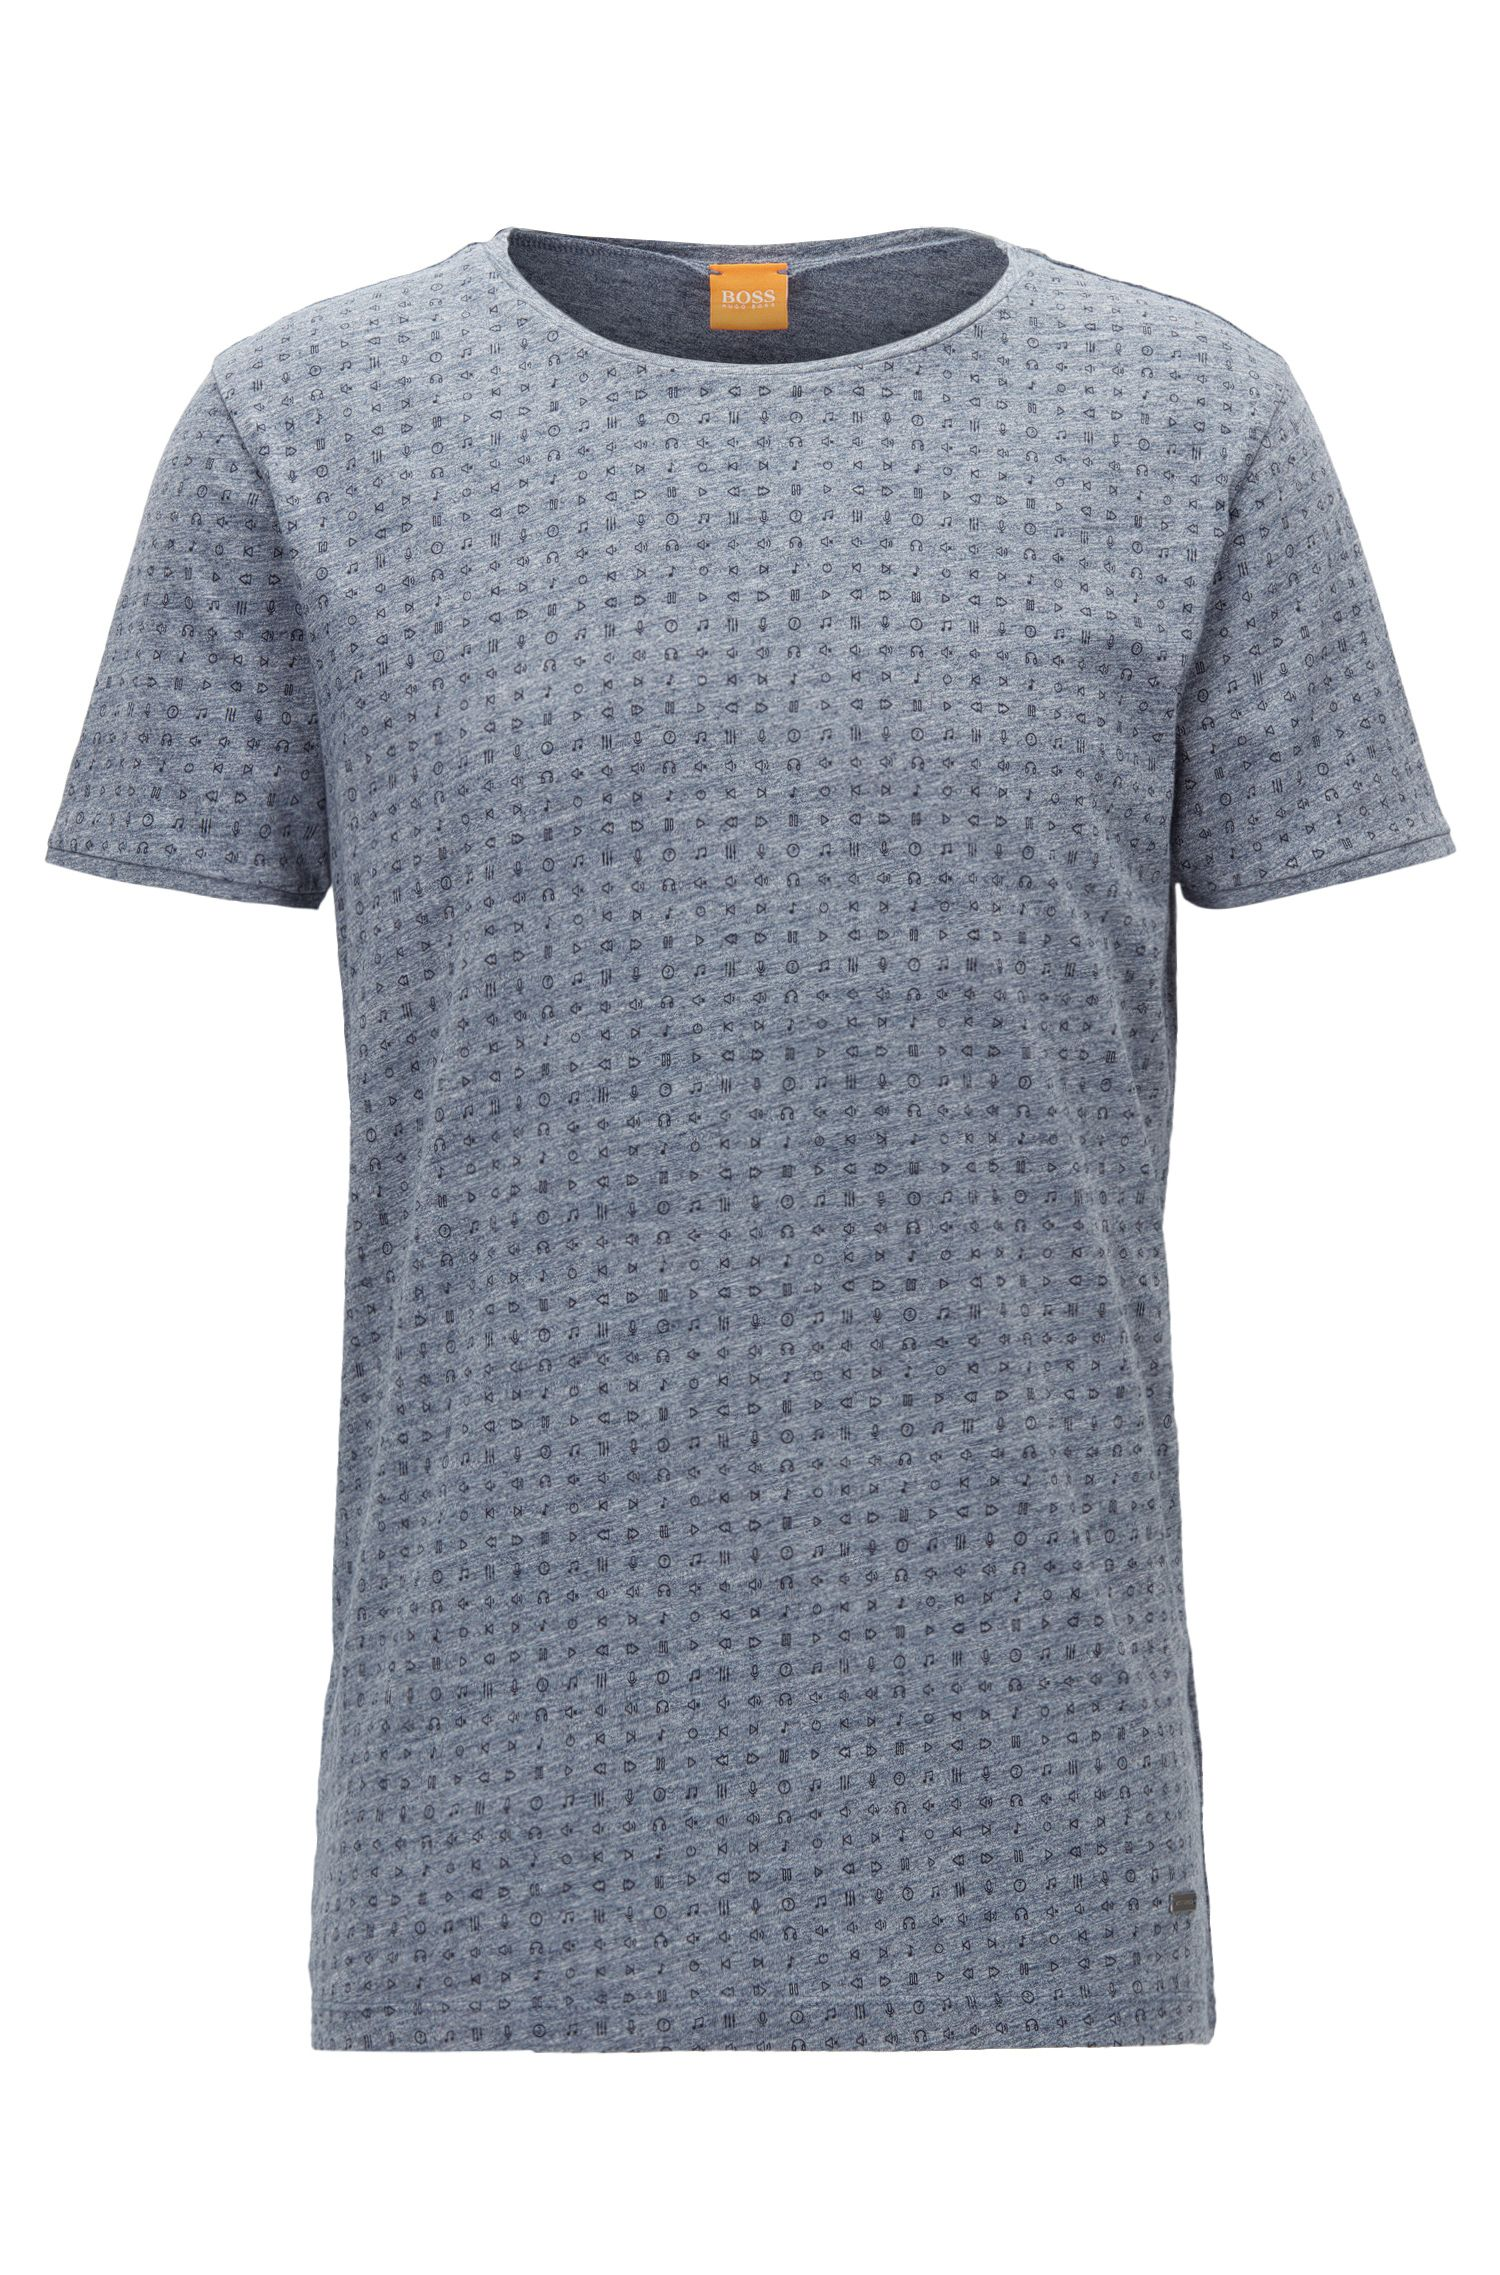 Regular-fit T-shirt van gemêleerde jersey